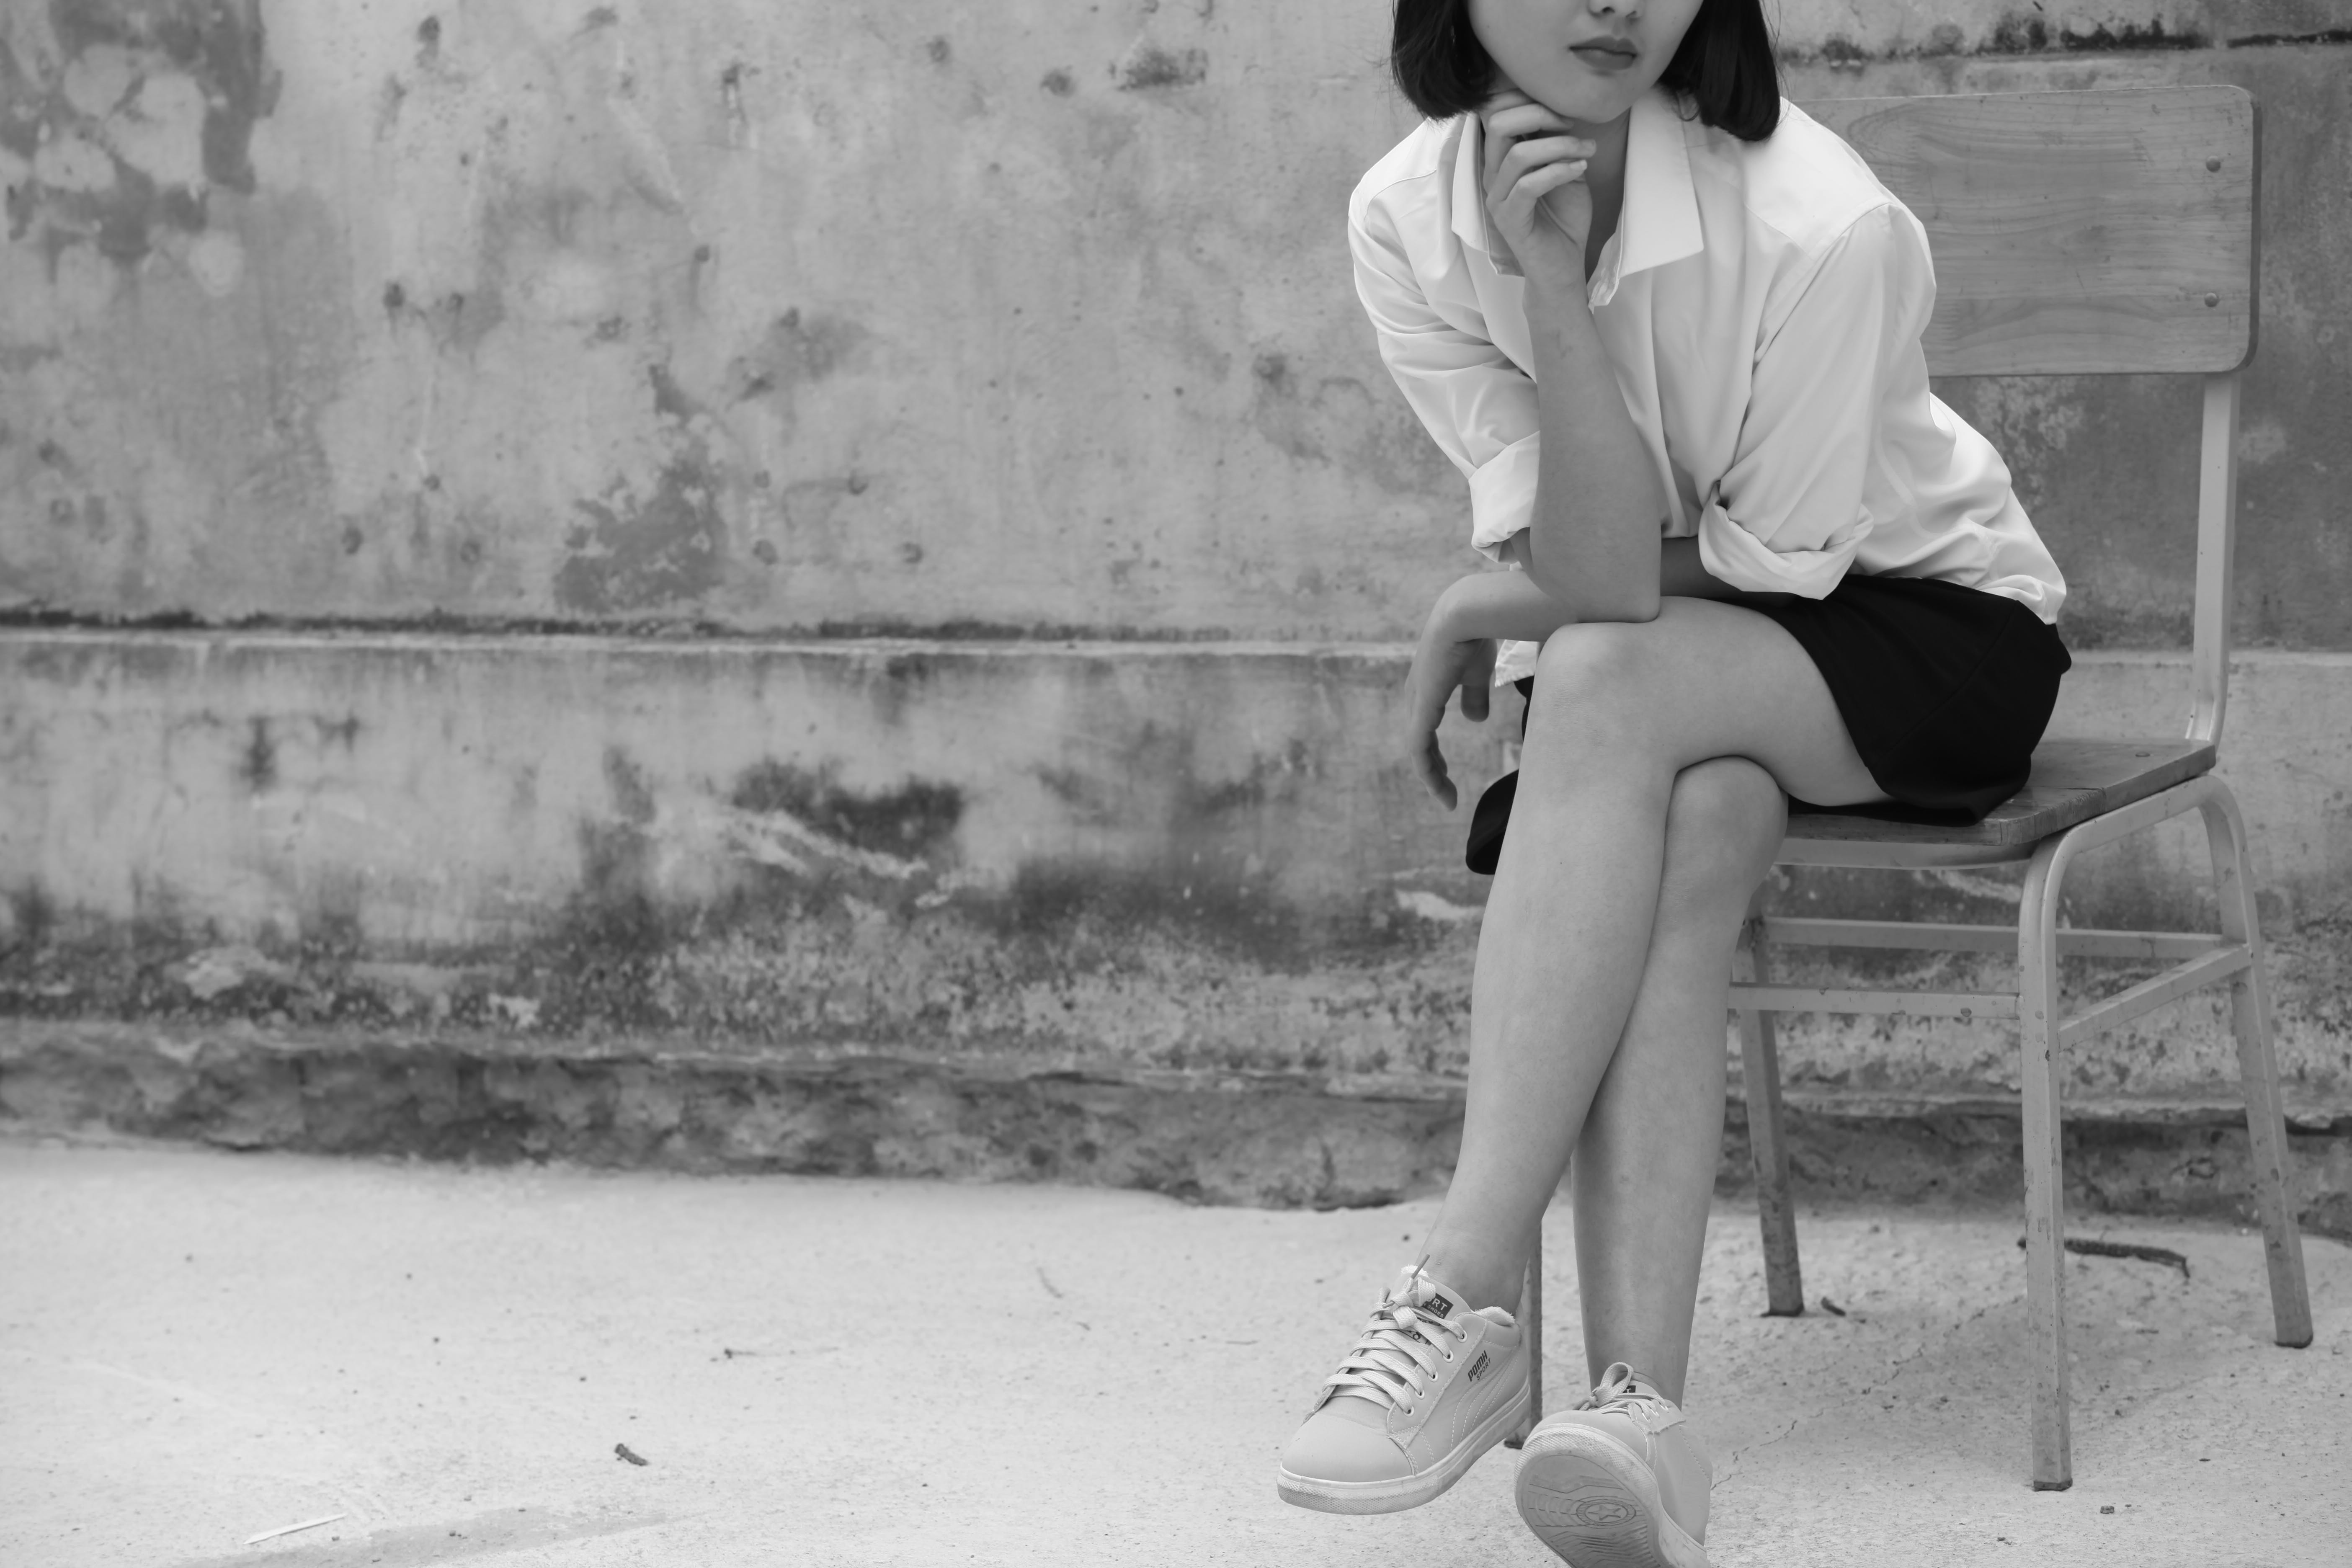 Grayscale Photography of Woman Wearing White Shirt And Black Skirt